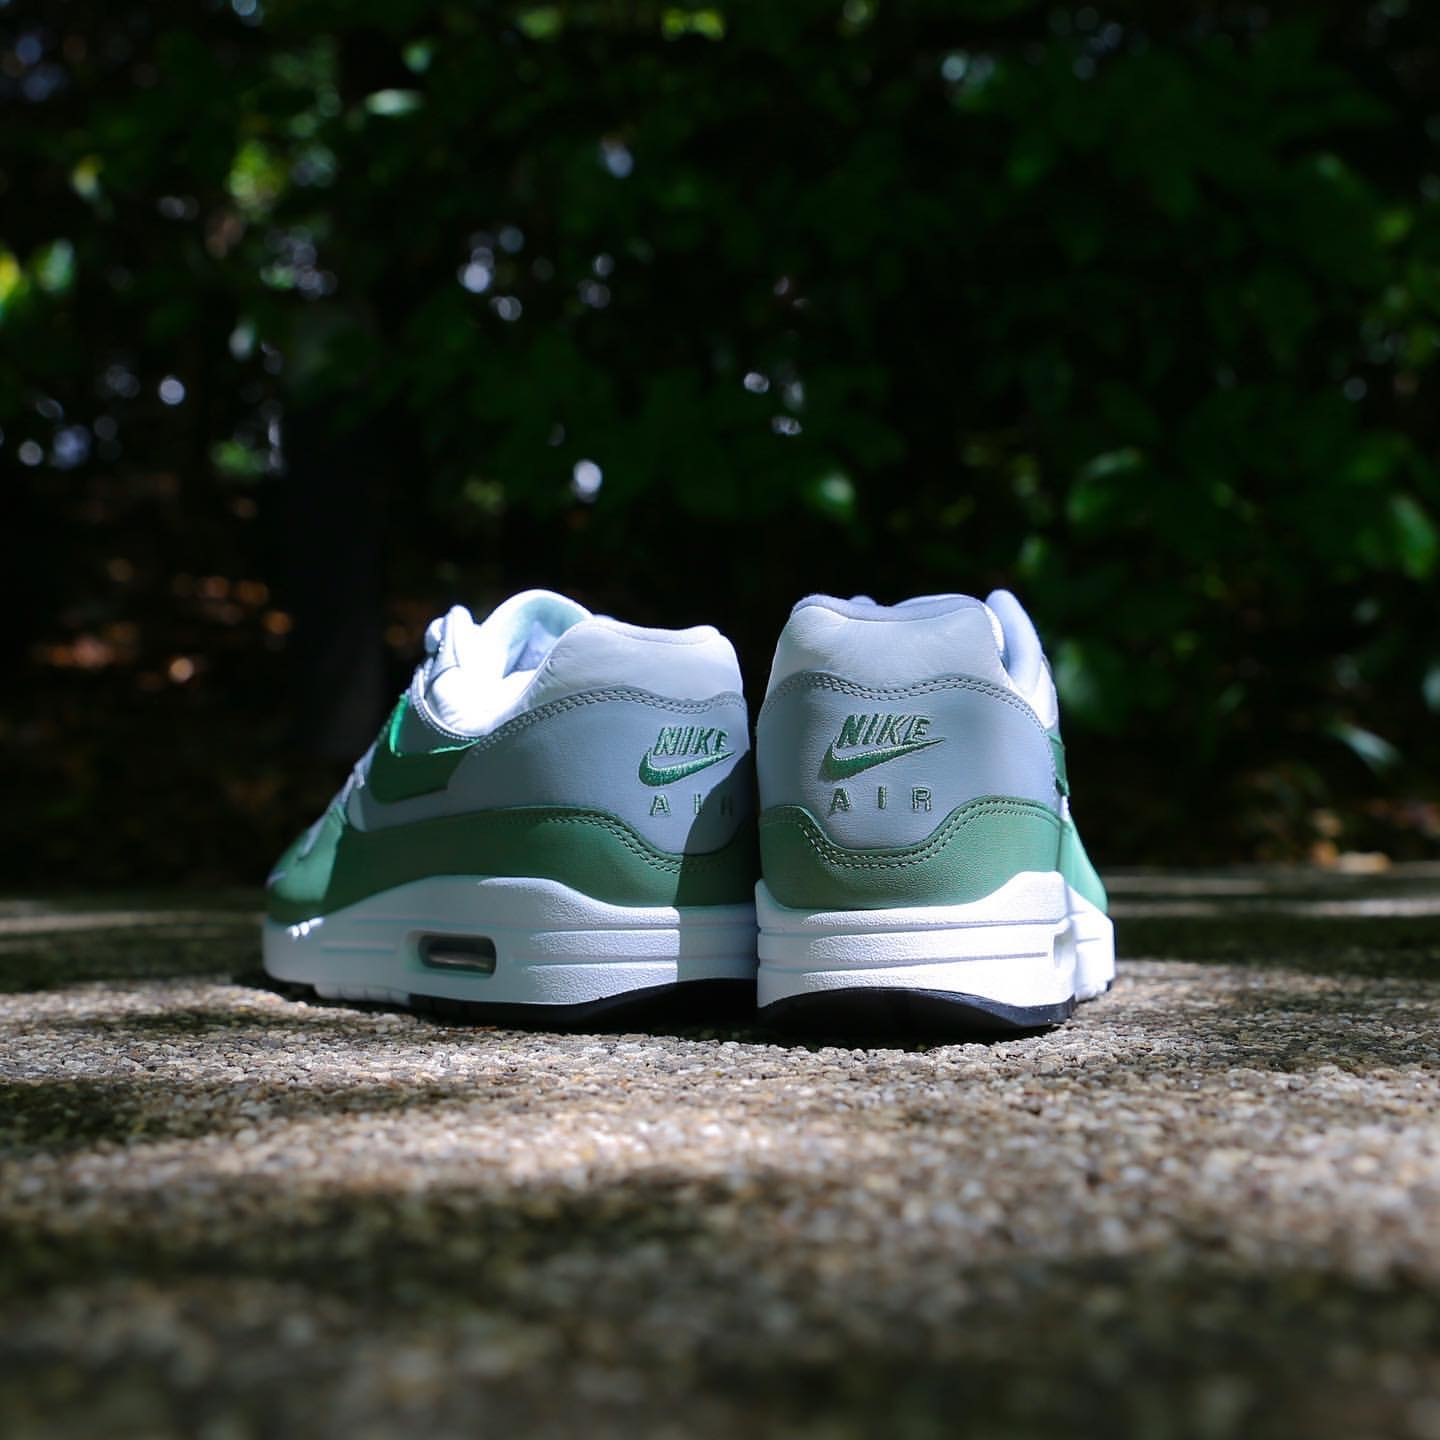 7月4日 発売予定 NIKE AIR MAX 1 PRM (DB5074-100,DB5074-101)